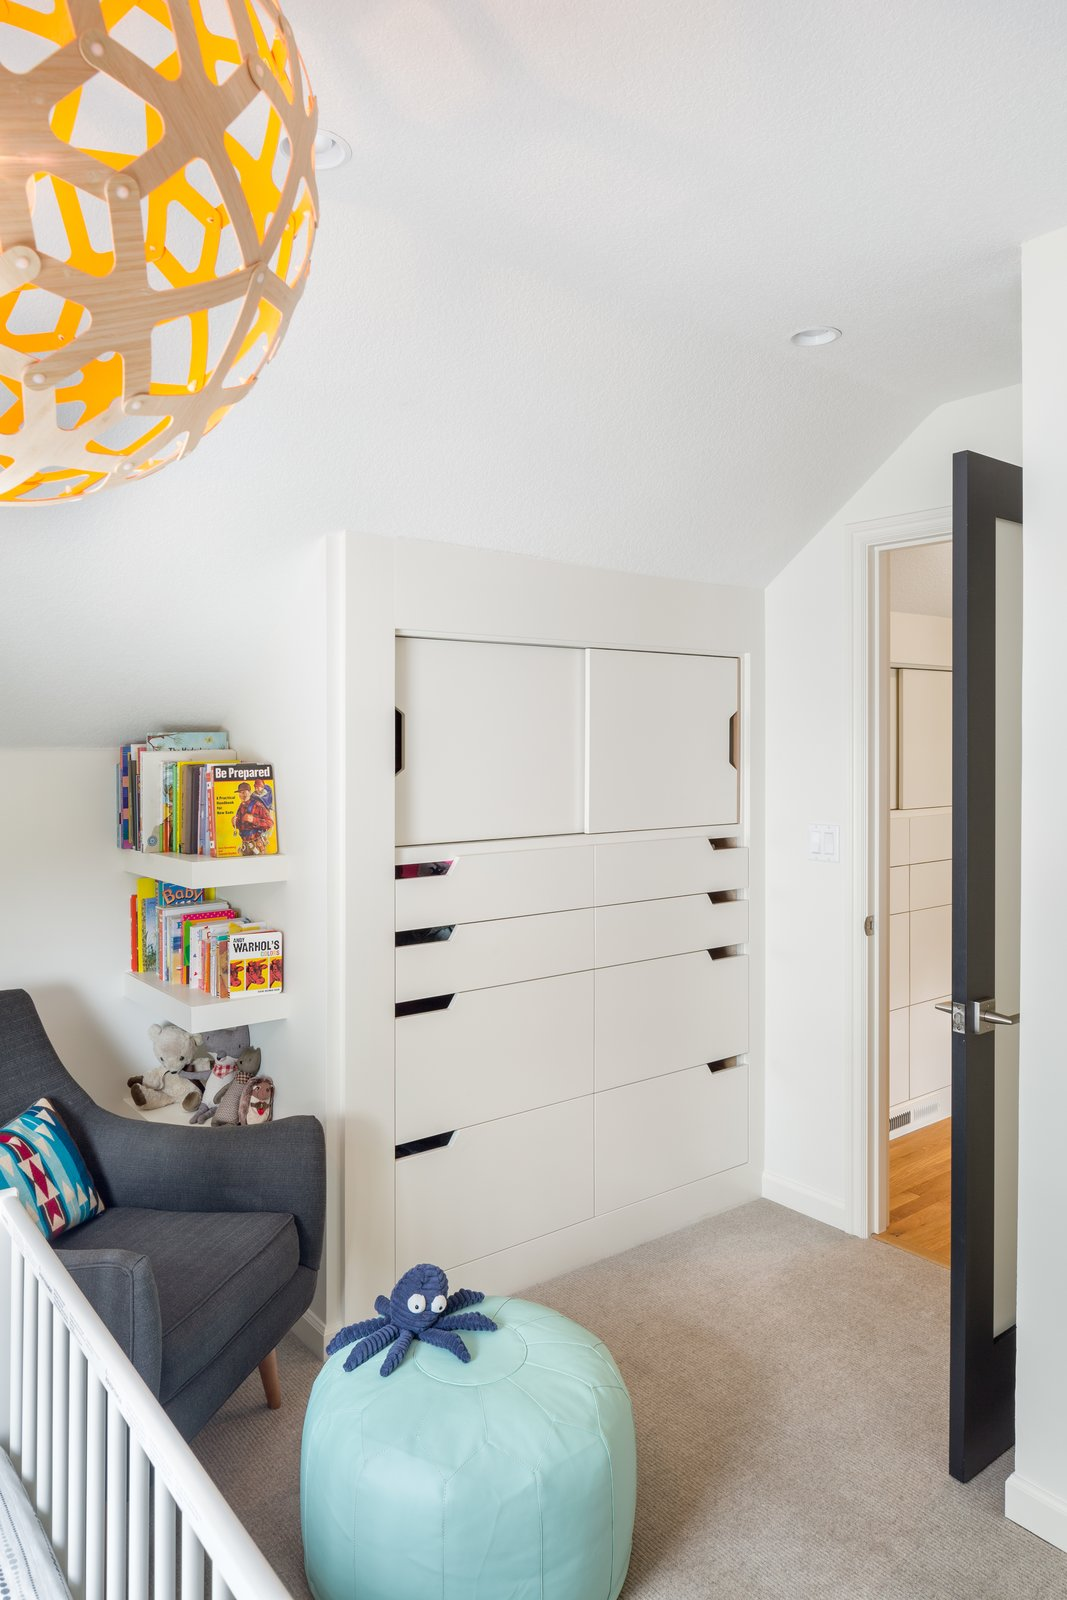 Wood Counter, Ceramic Tile Floor, Drop In Sink, Wall Lighting, and Kids Room Fun shapes make for the perfect Scandinavian modern nursery   Hurst Avenue by Guggenheim Architecture + Design Studio